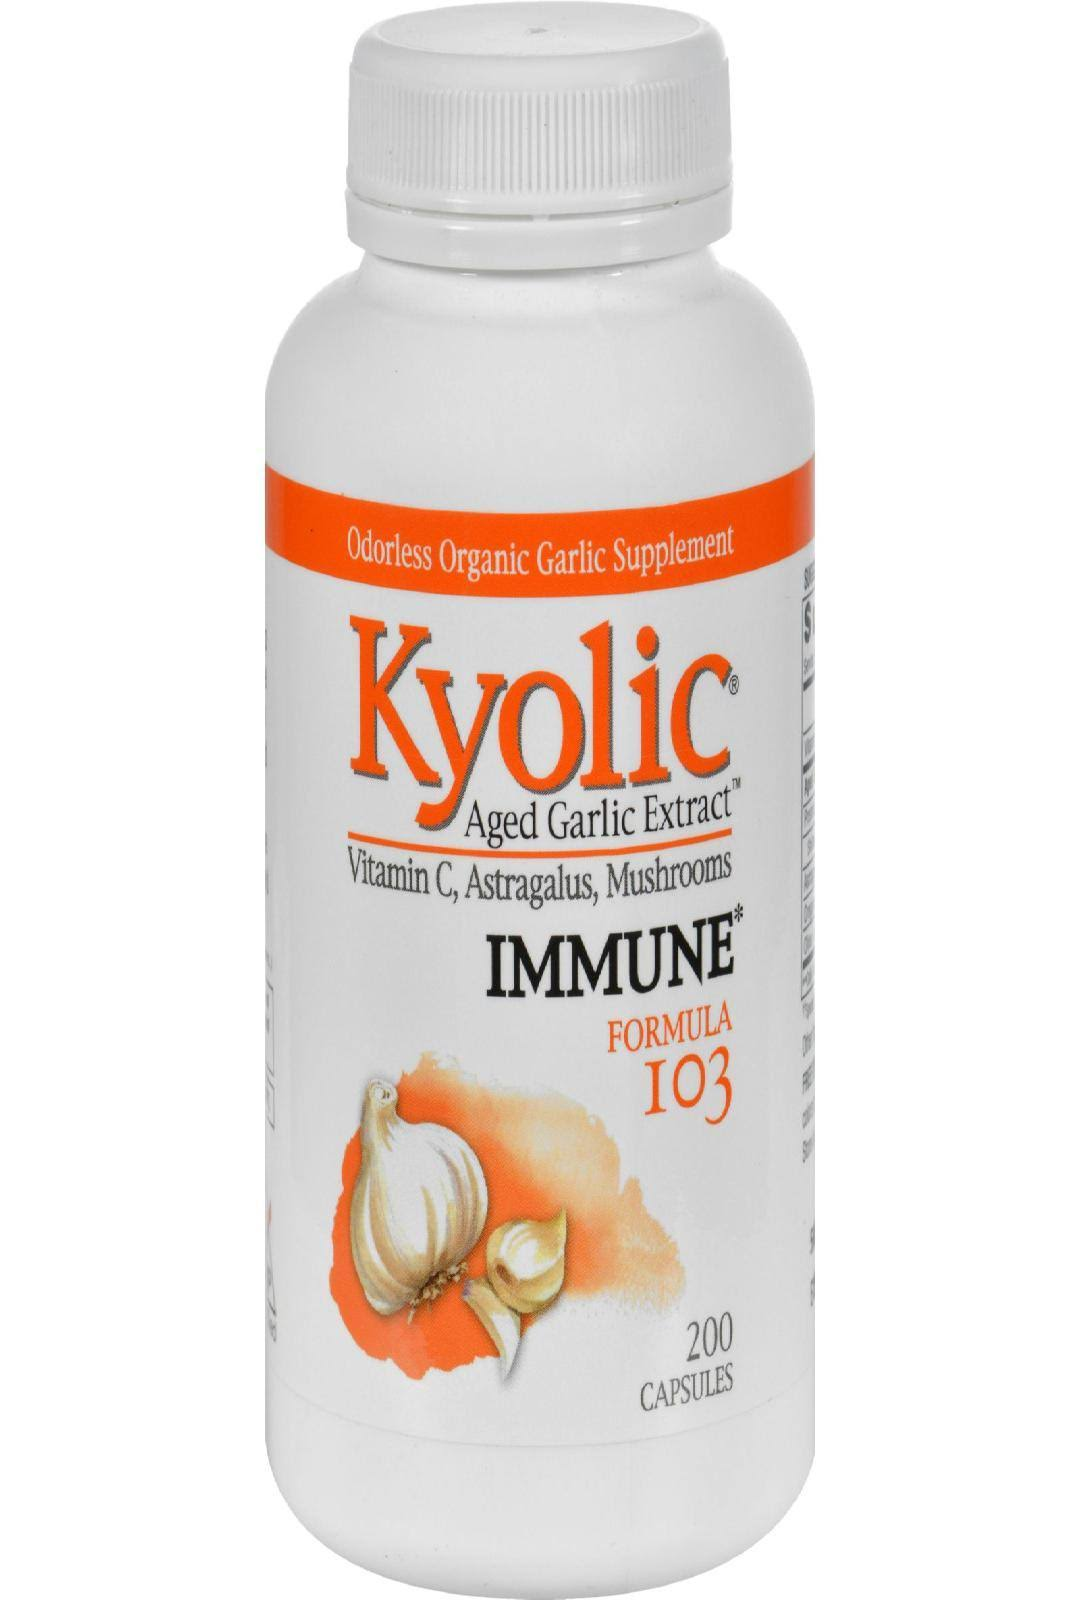 Kyolic Aged Garlic Extract Immune Formula Supplement - 200 Capsules